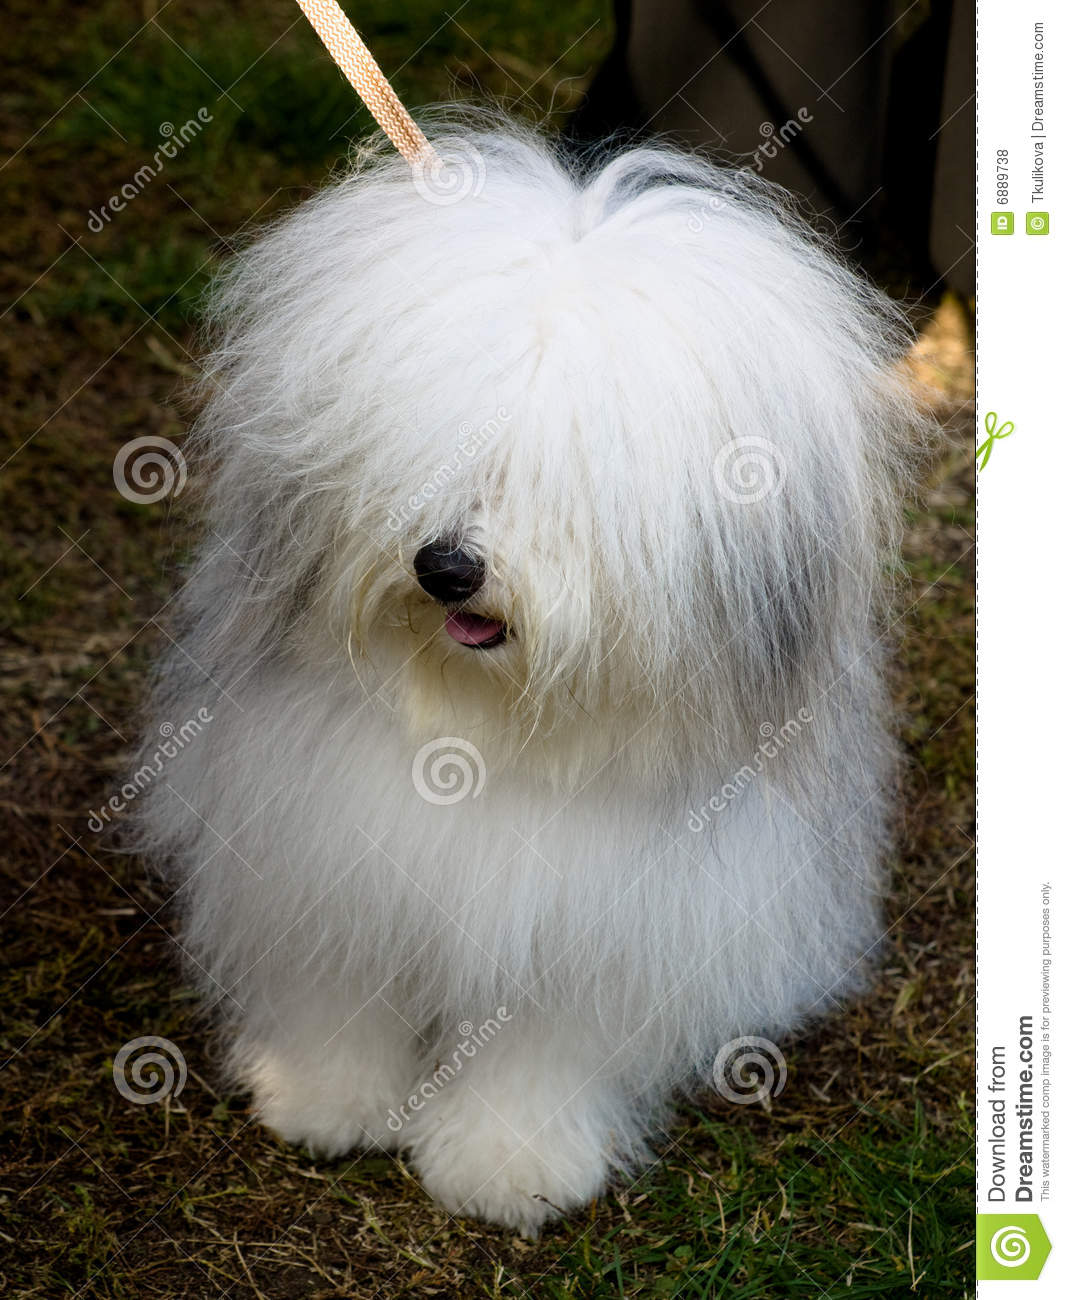 Small White Colored Bathrooms To Get A Huge Functions: Small White Dog, Breed-ODIS Stock Photo